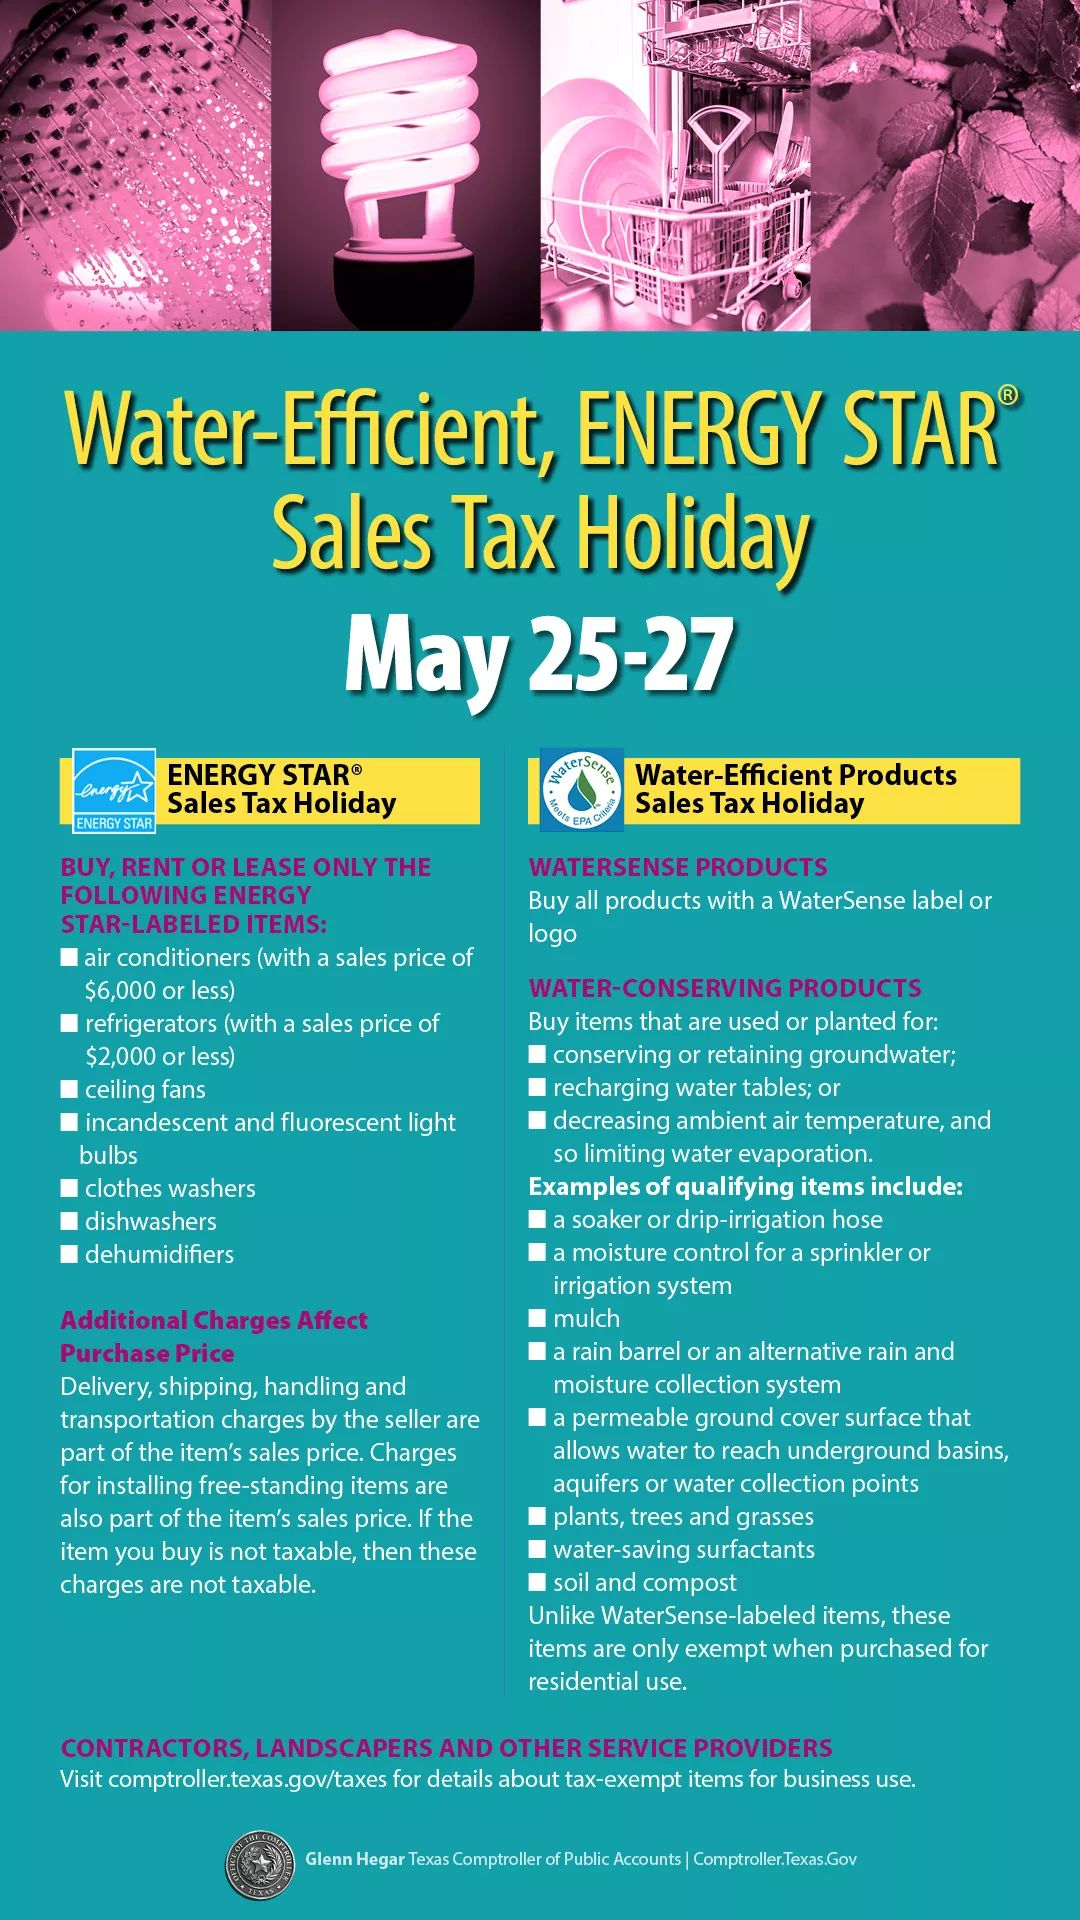 Water-Efficient, ENERGY STAR Sales Tax Holiday